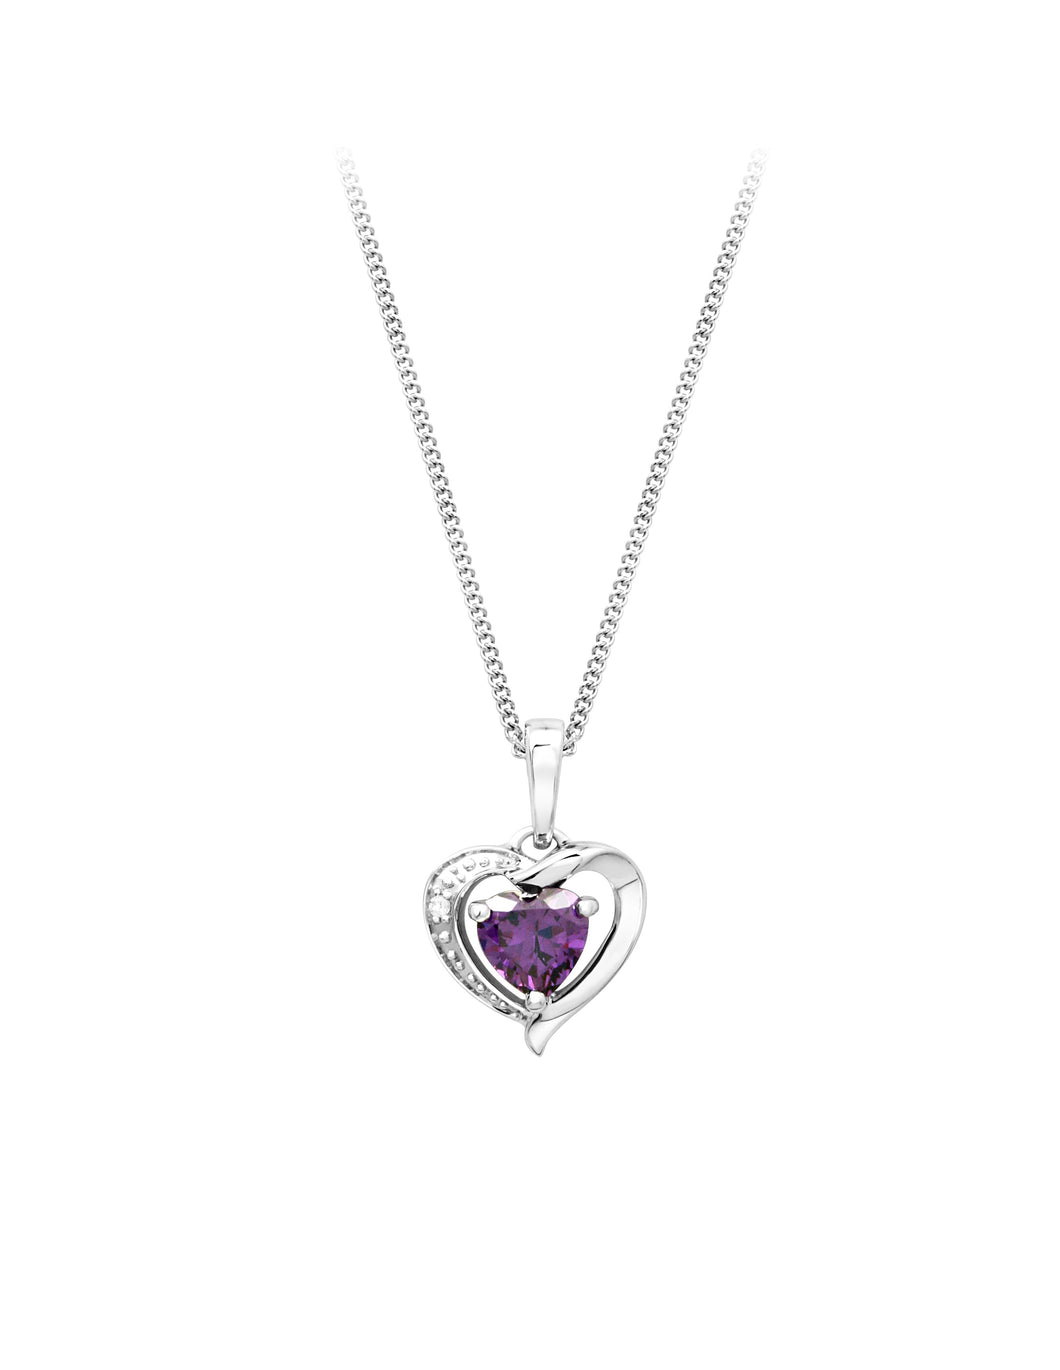 Diamond and Genuine Amythyst Heart Pendant  10K White Gold  0.005ct